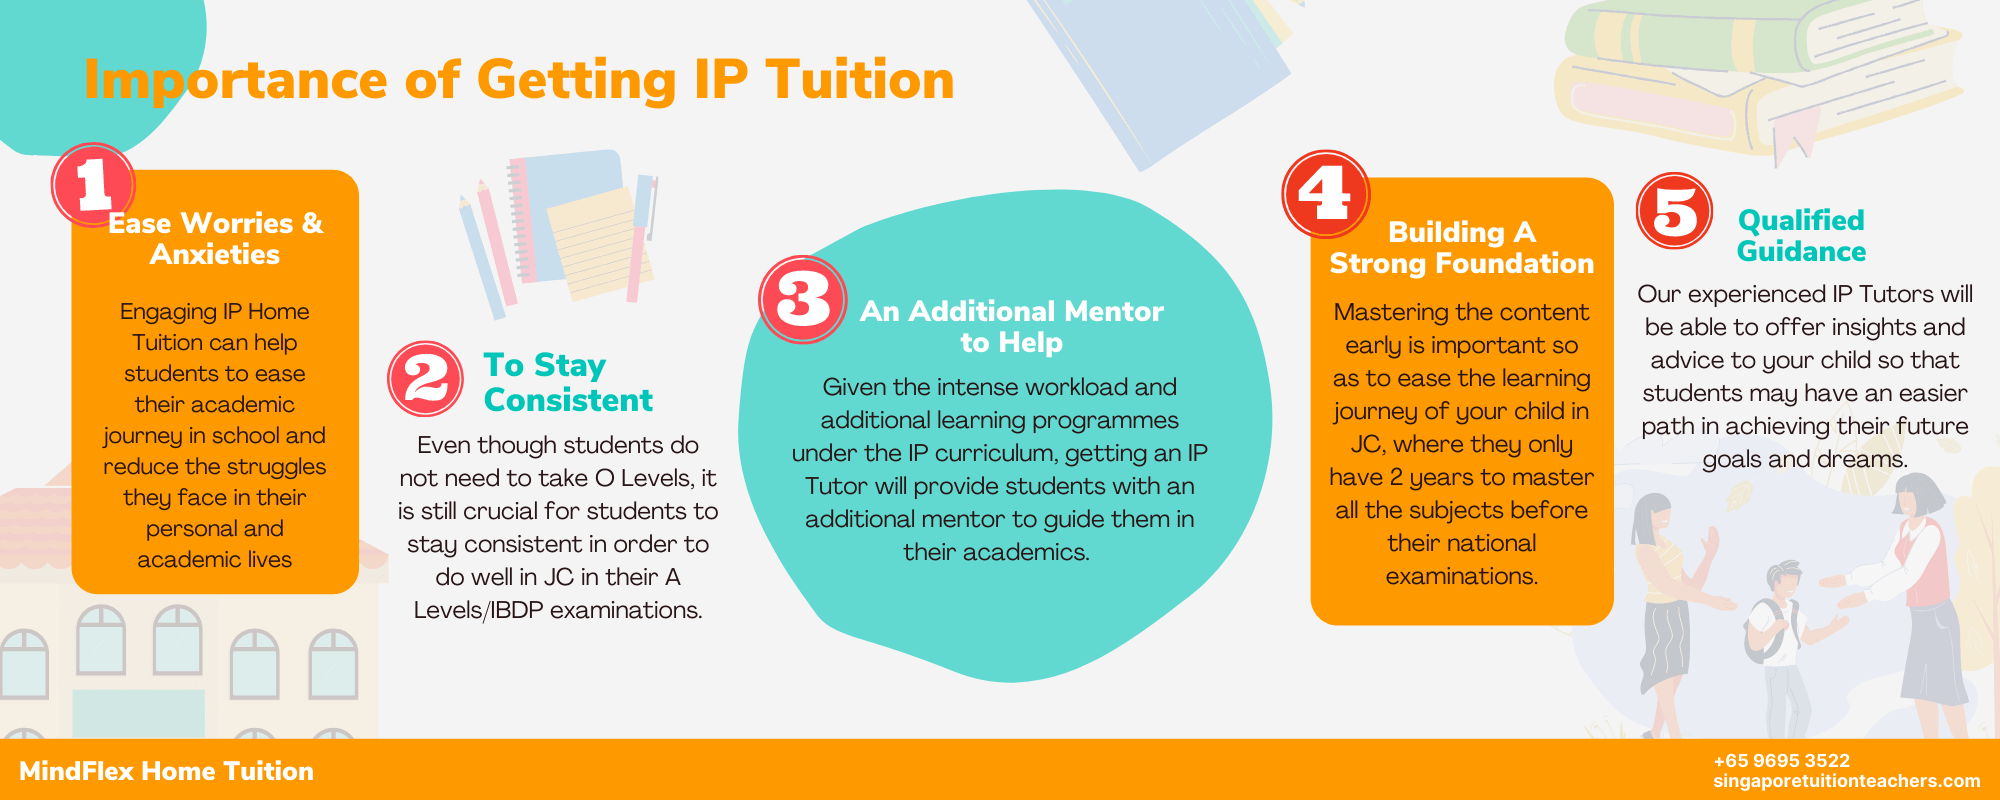 These are some important pointers on why engaging IP Tuition is so important